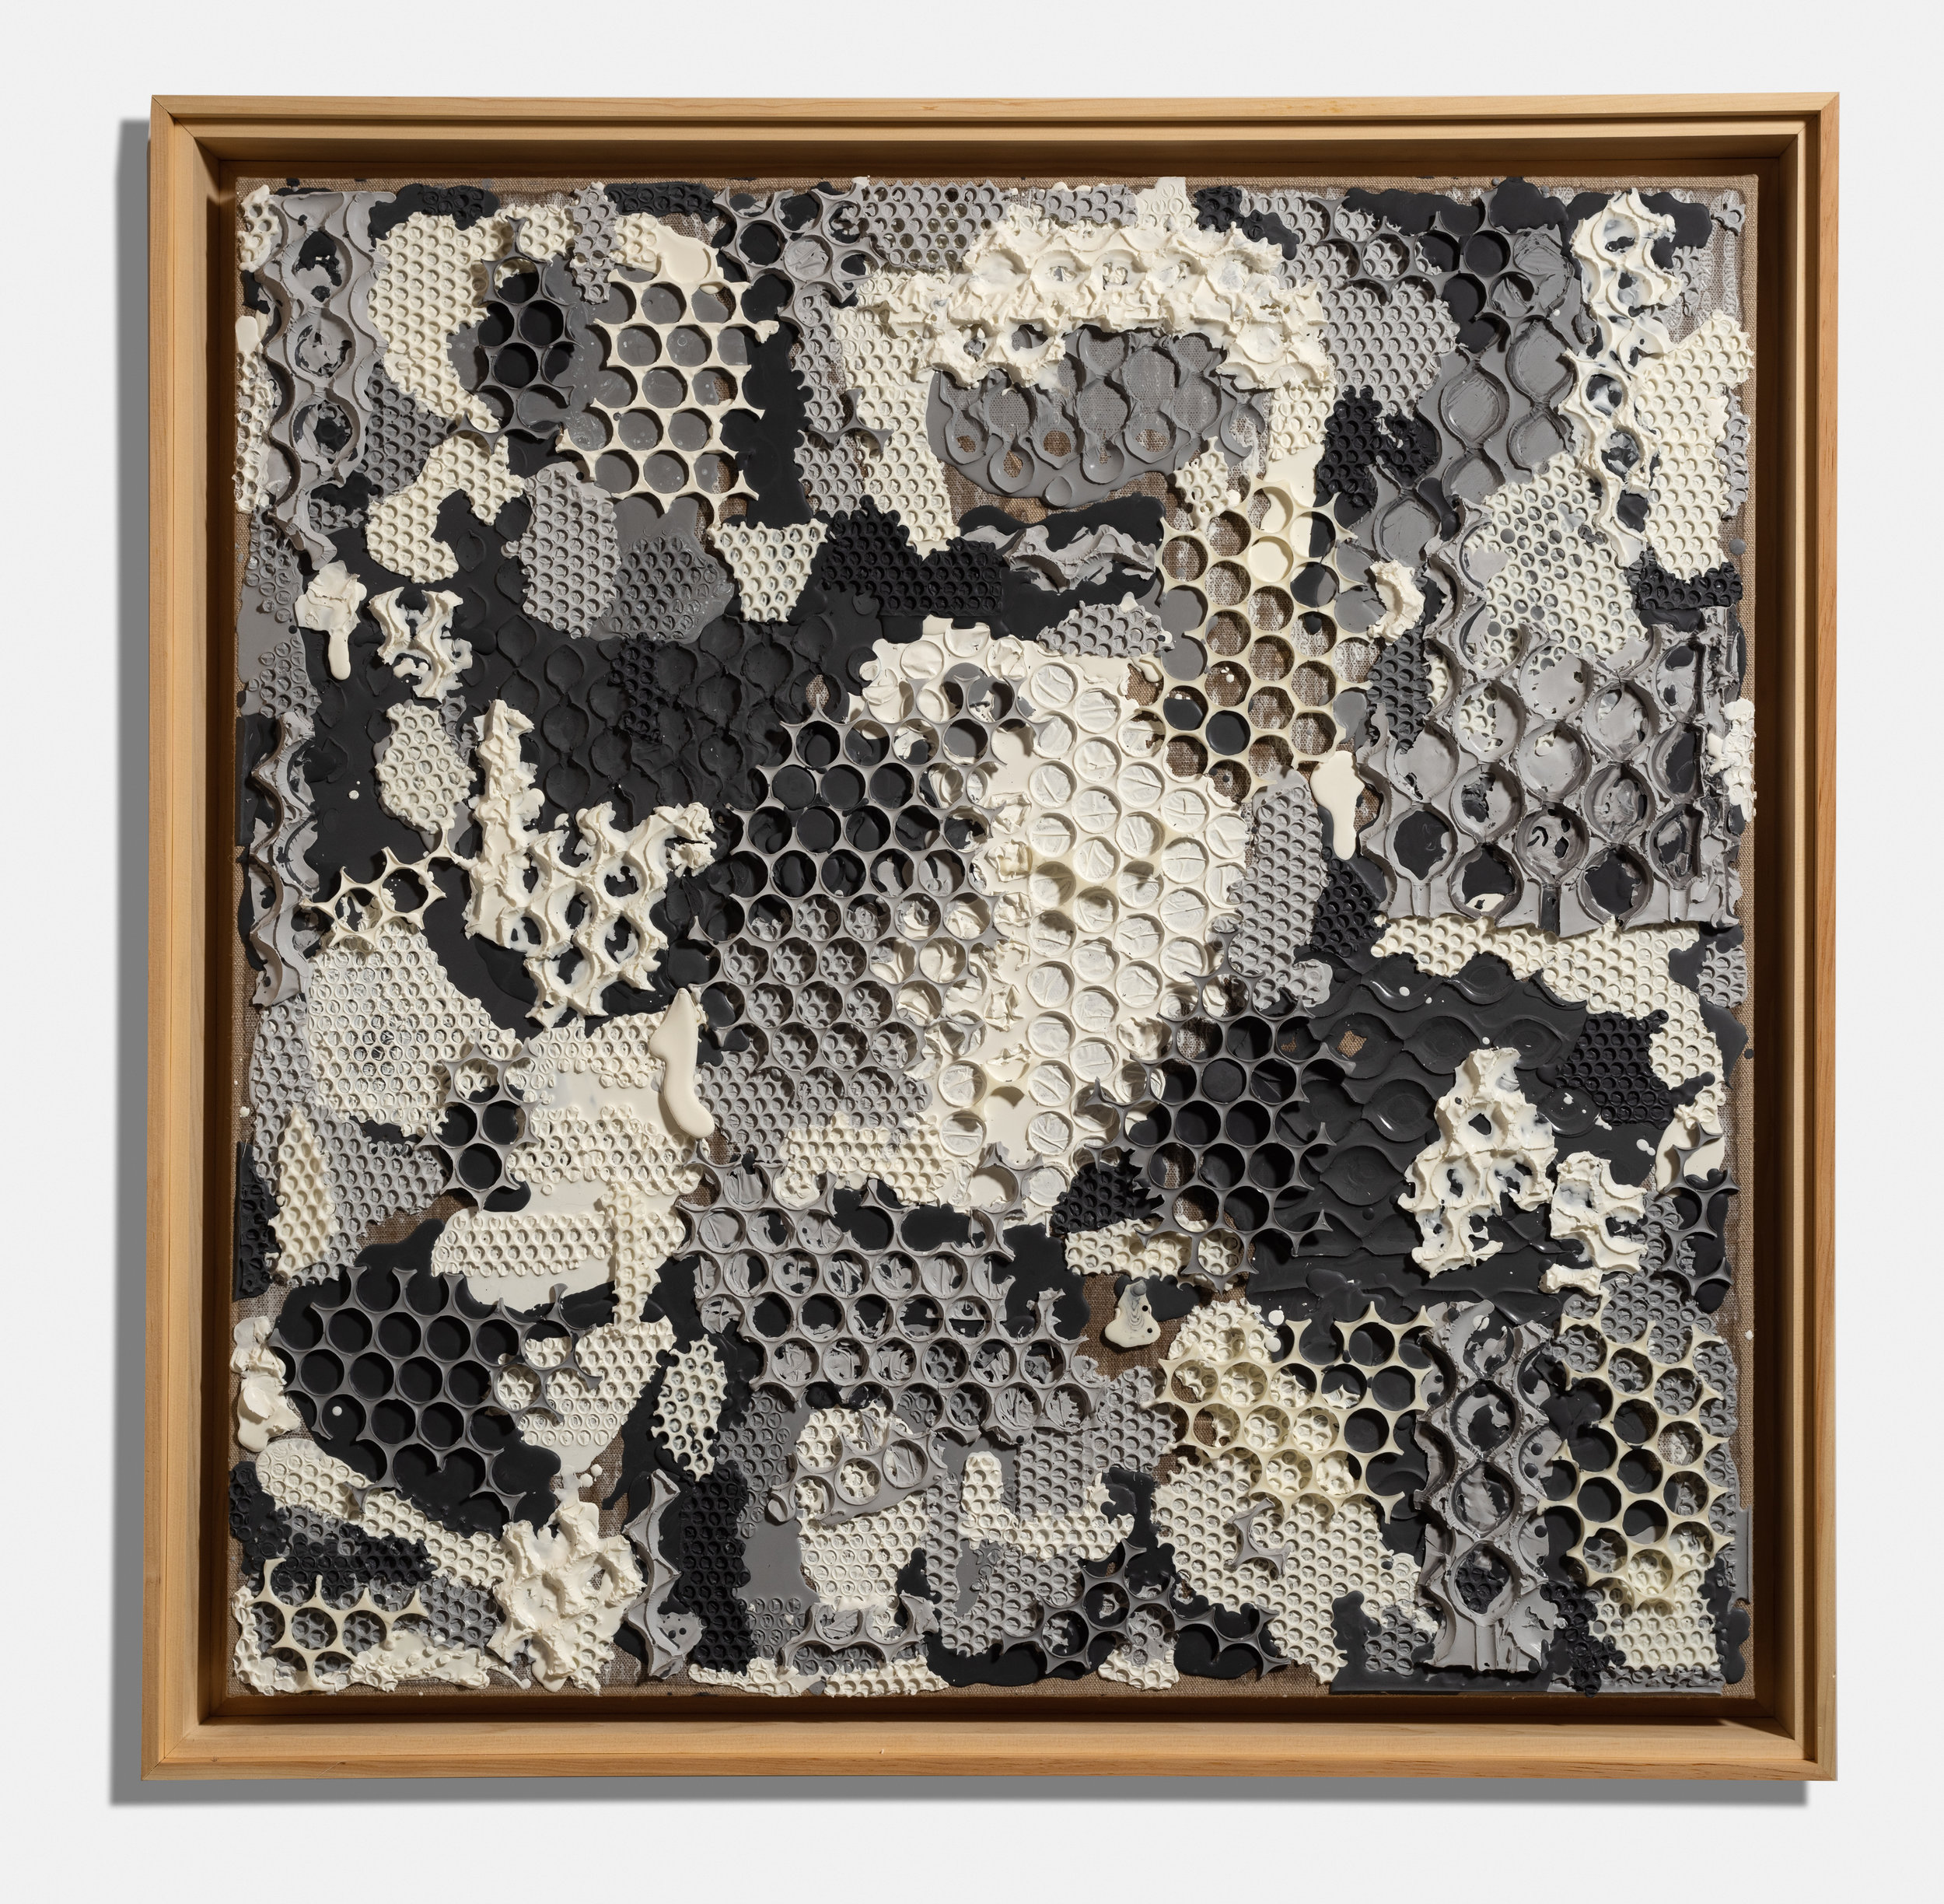 Patchwork Grey , 2015, encaustic on linen, 40 x 40 x 3 inches